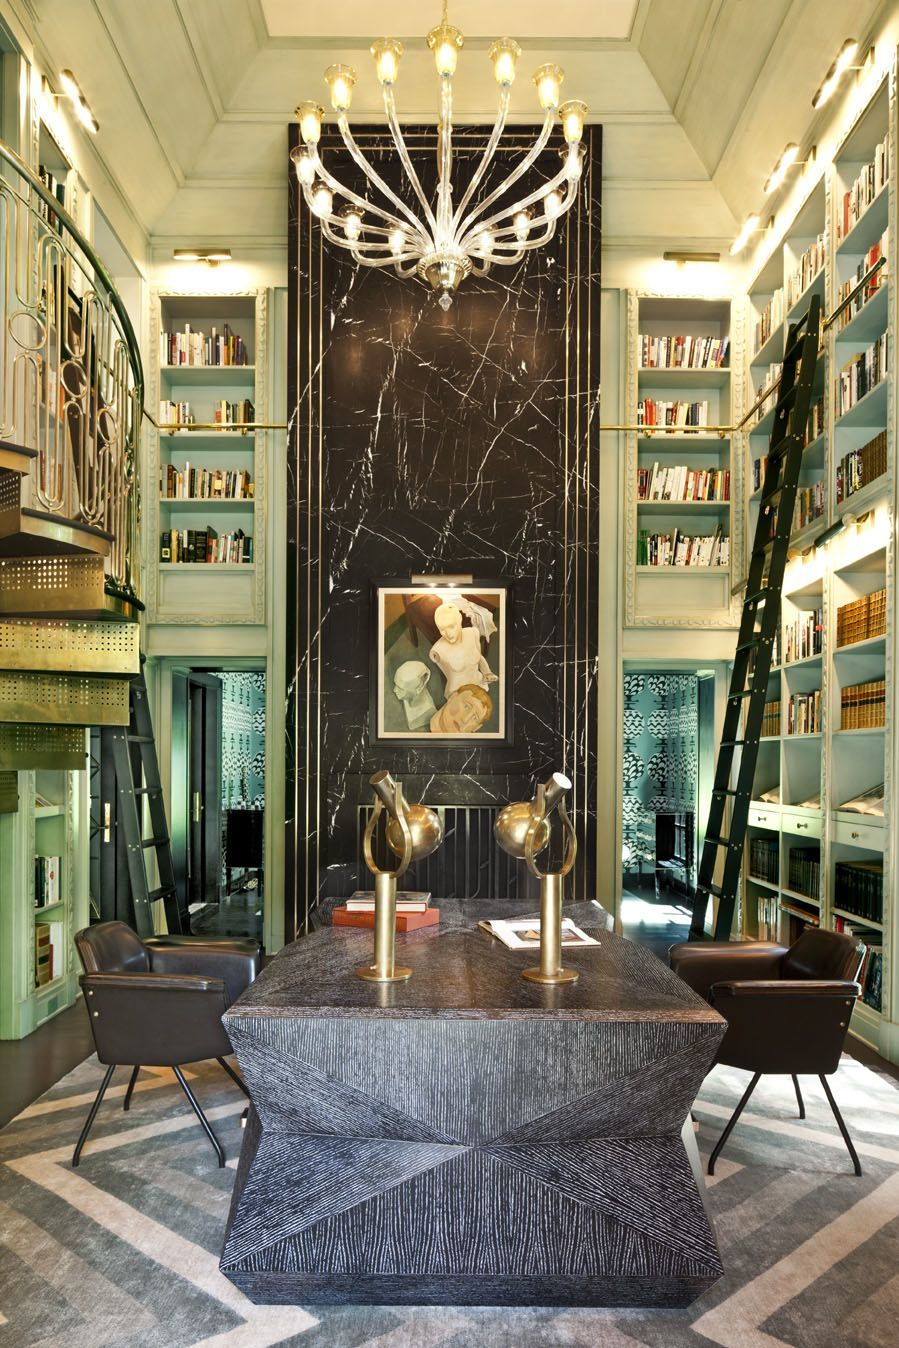 Kelly wearstler interiors evergreen residence library interiors library and office for Kelly wearstler interior design